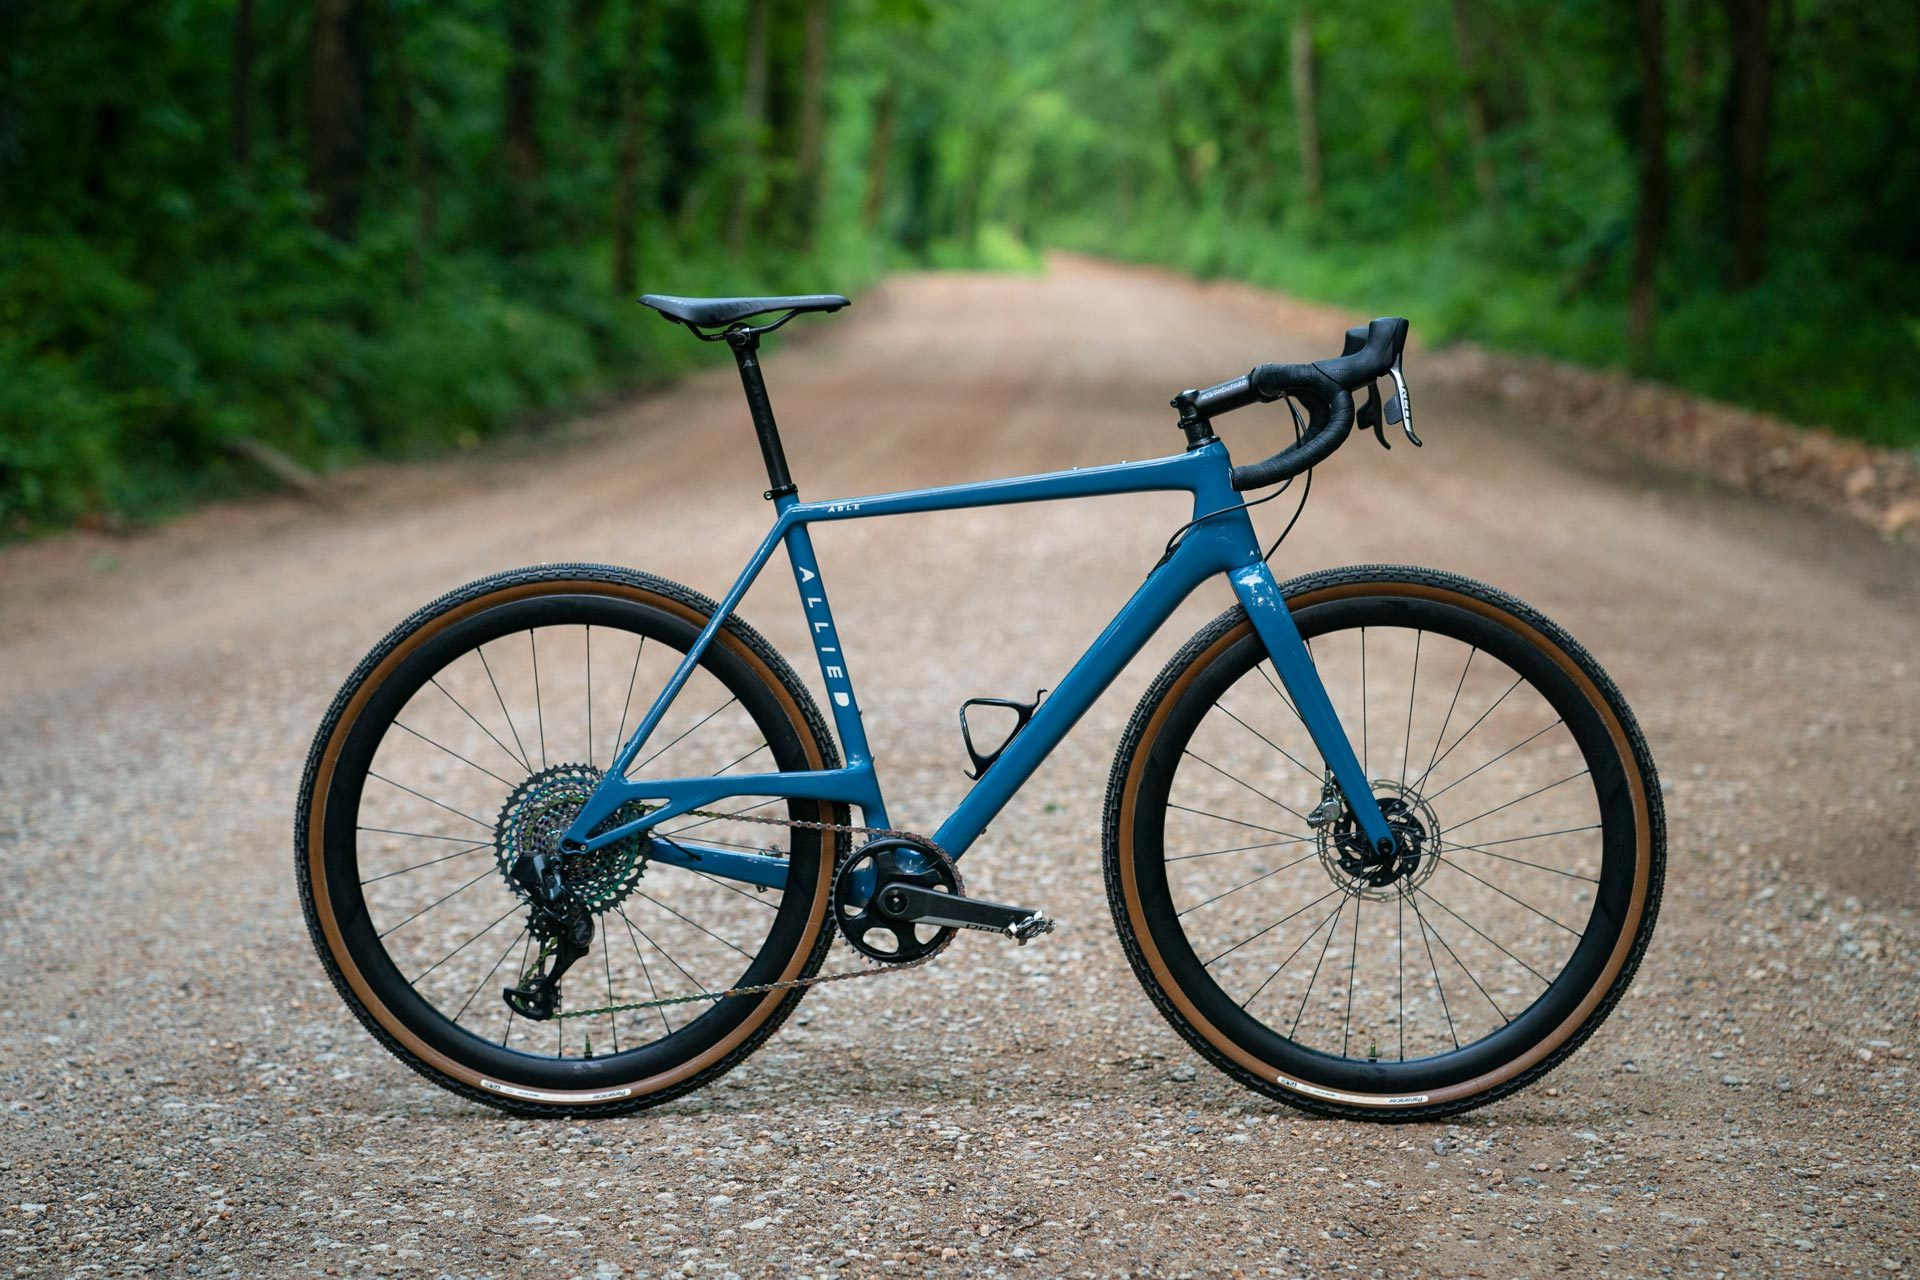 Allied proves ABLE is DK200 ready w/ dual victories on new raised chainstay gravel bike